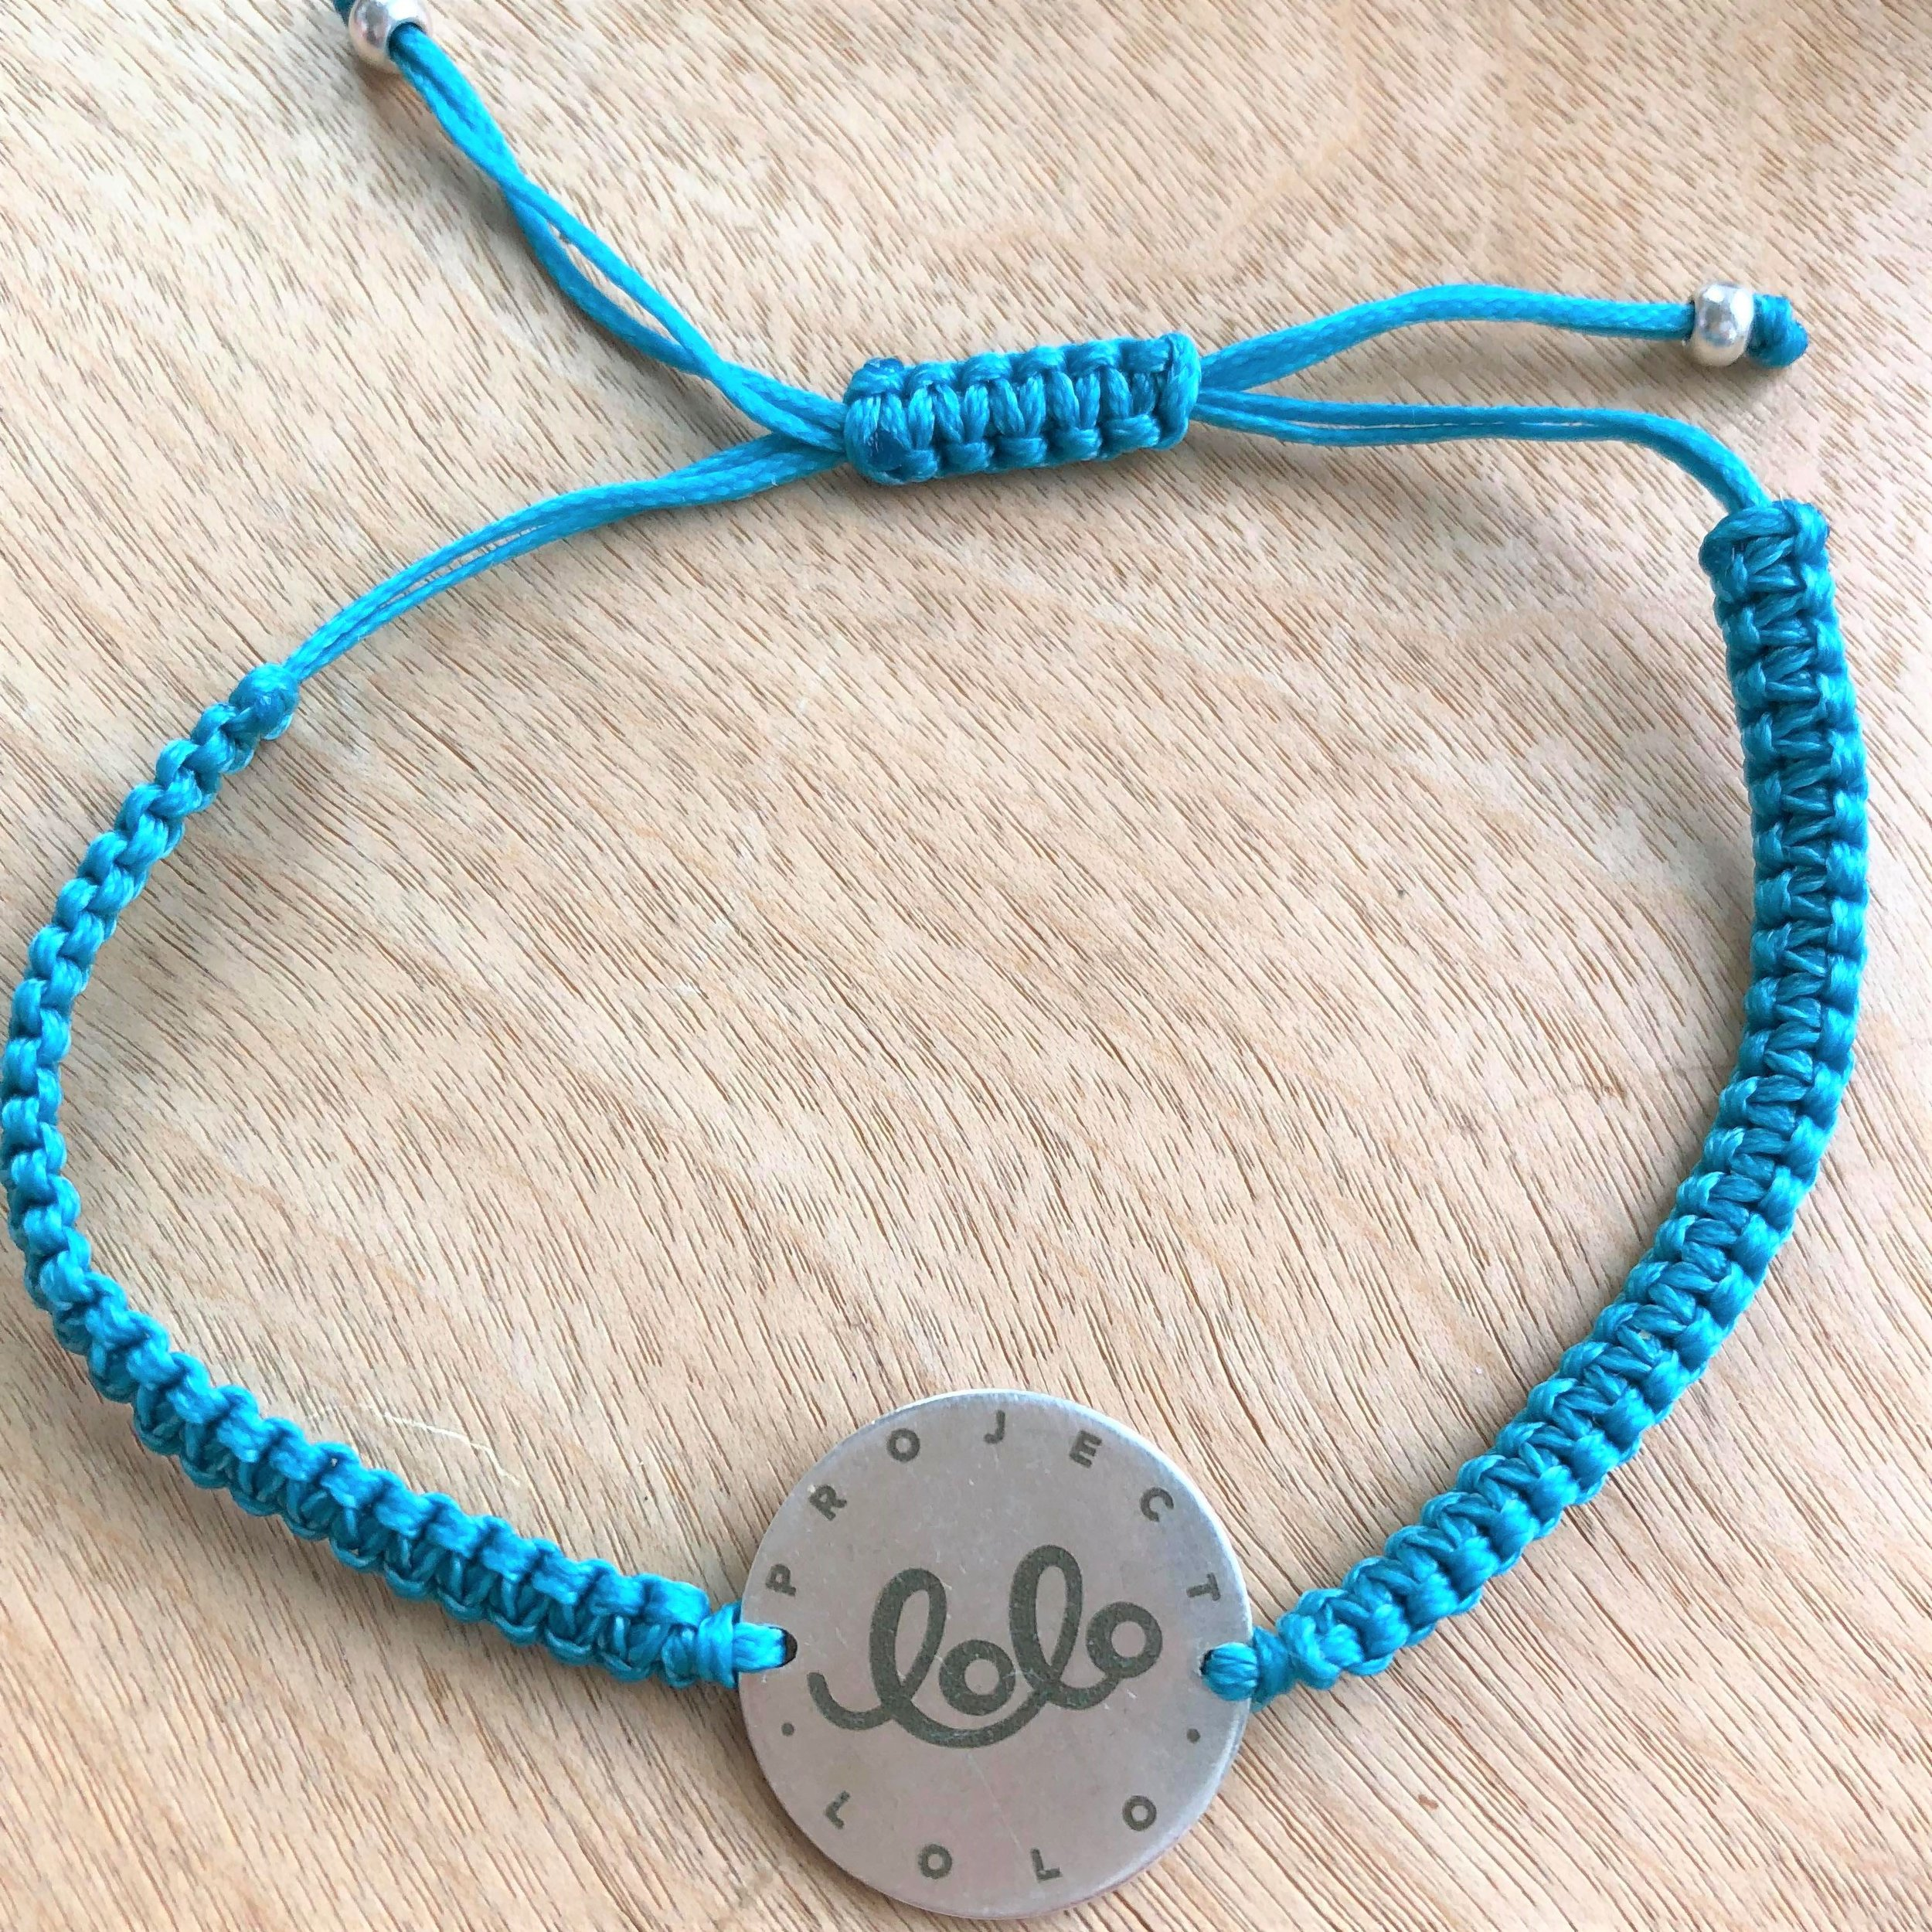 LOLO's Charity Partner, Project Lolo's Blue Macrame Bracelet, available now on  Project Lolo's online shop .